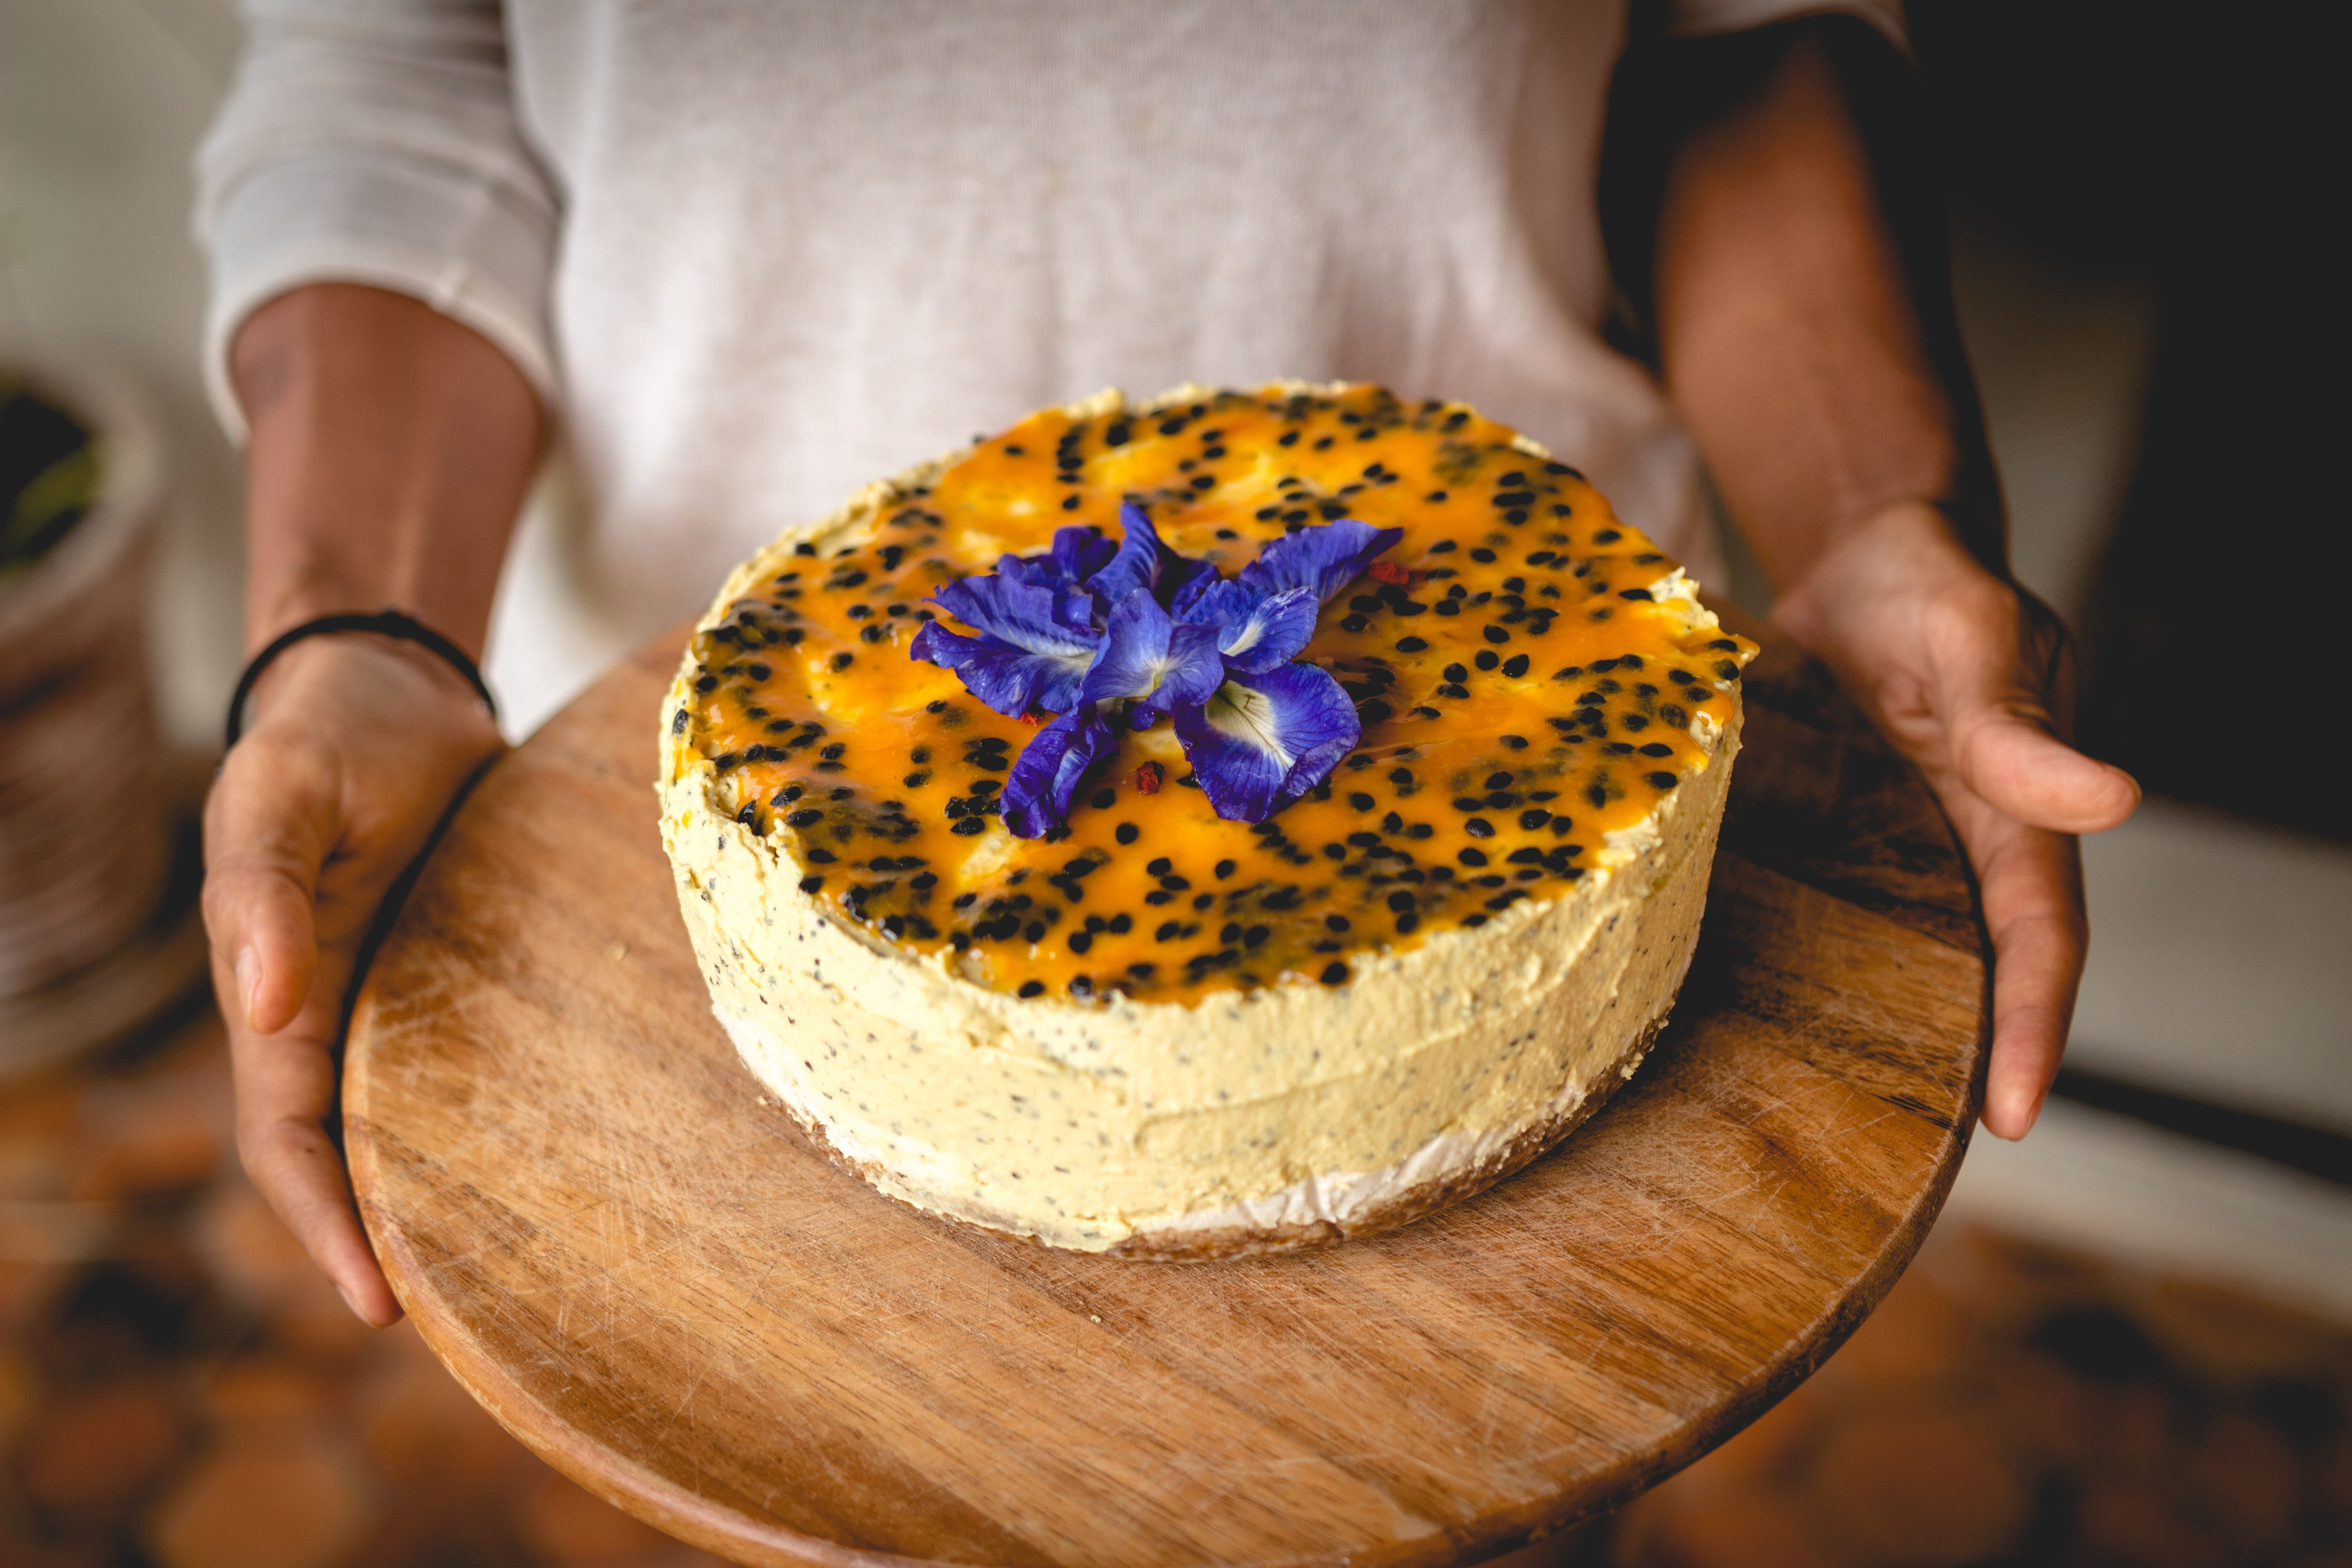 Delicious Food From The Restaurant (vegan Passion Fruit Cake)